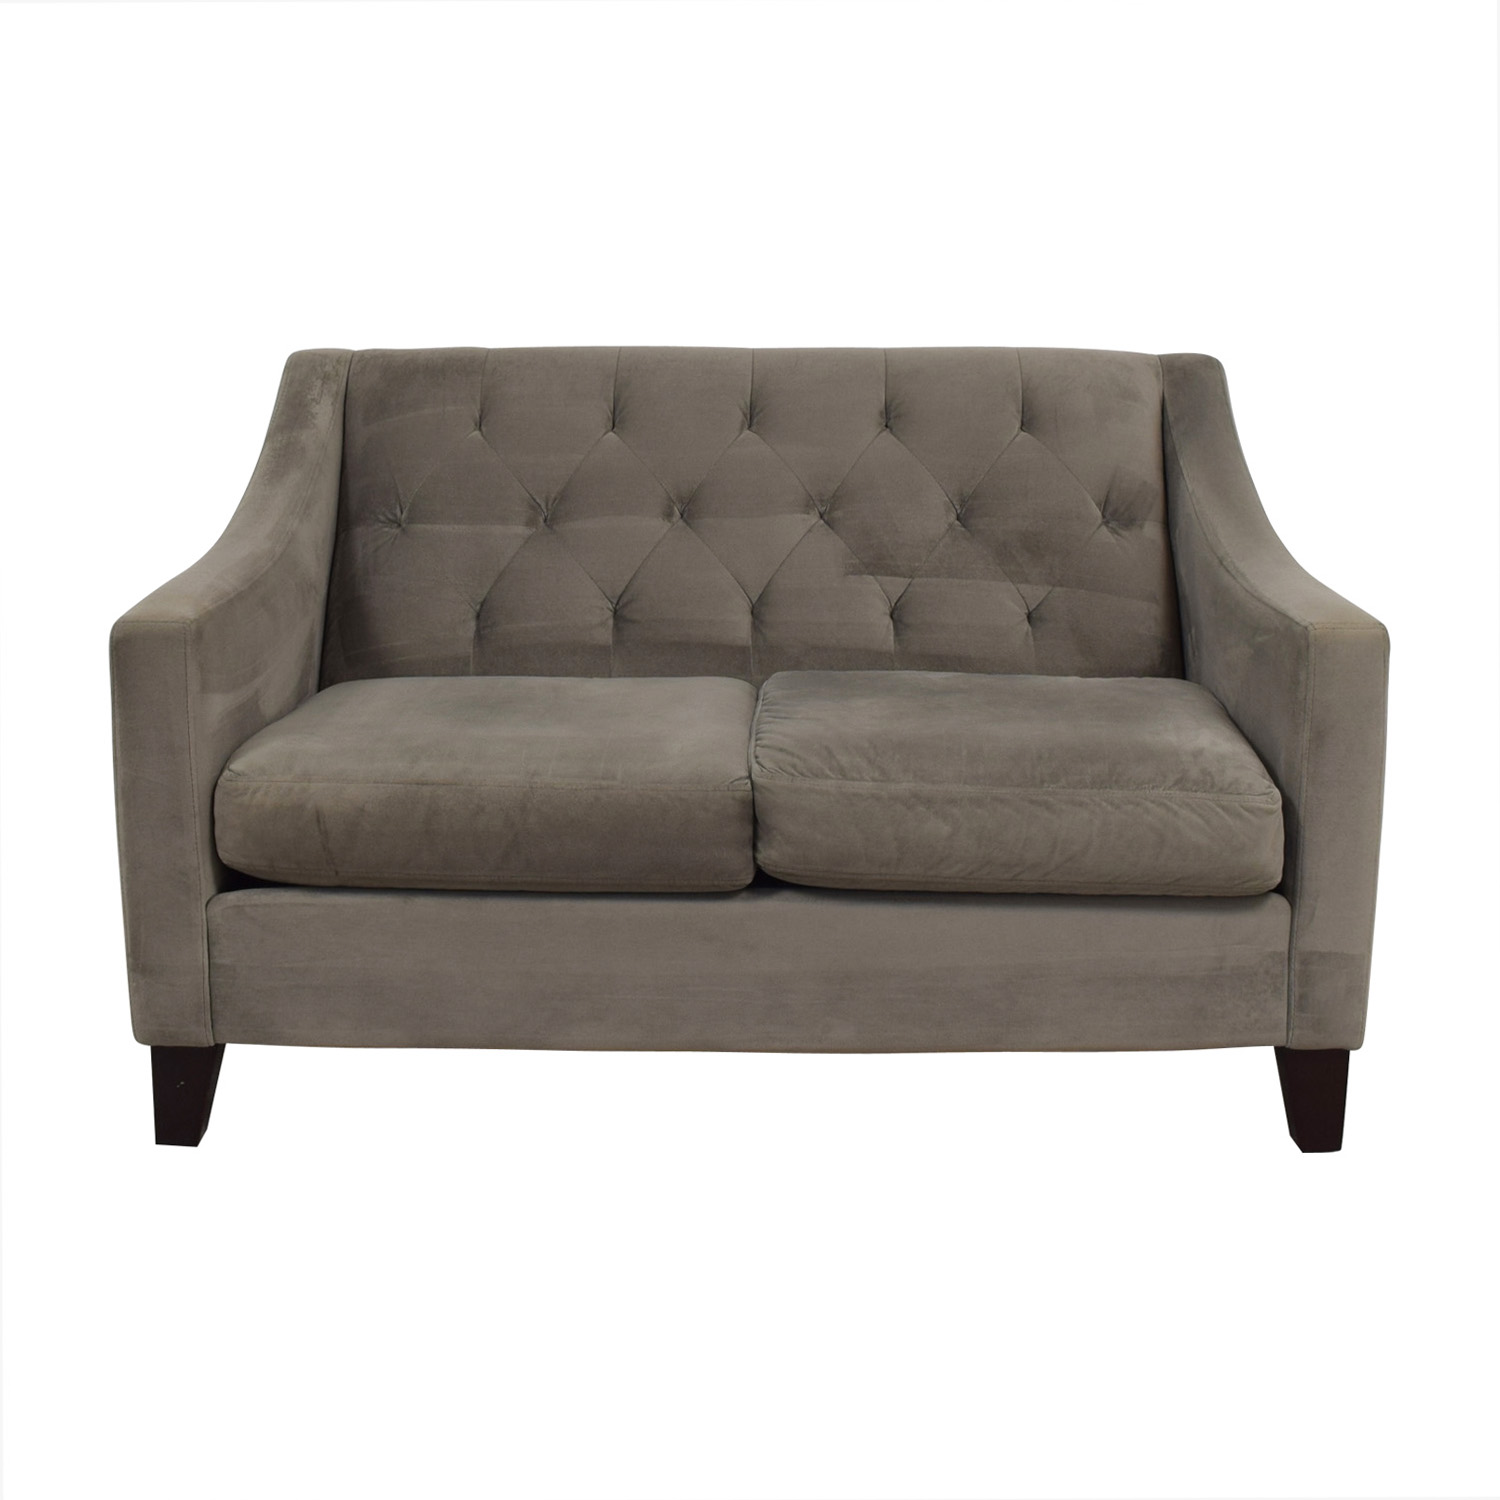 Max Home Max Home Grey Tufted Two-Cushion Love Seat Loveseats